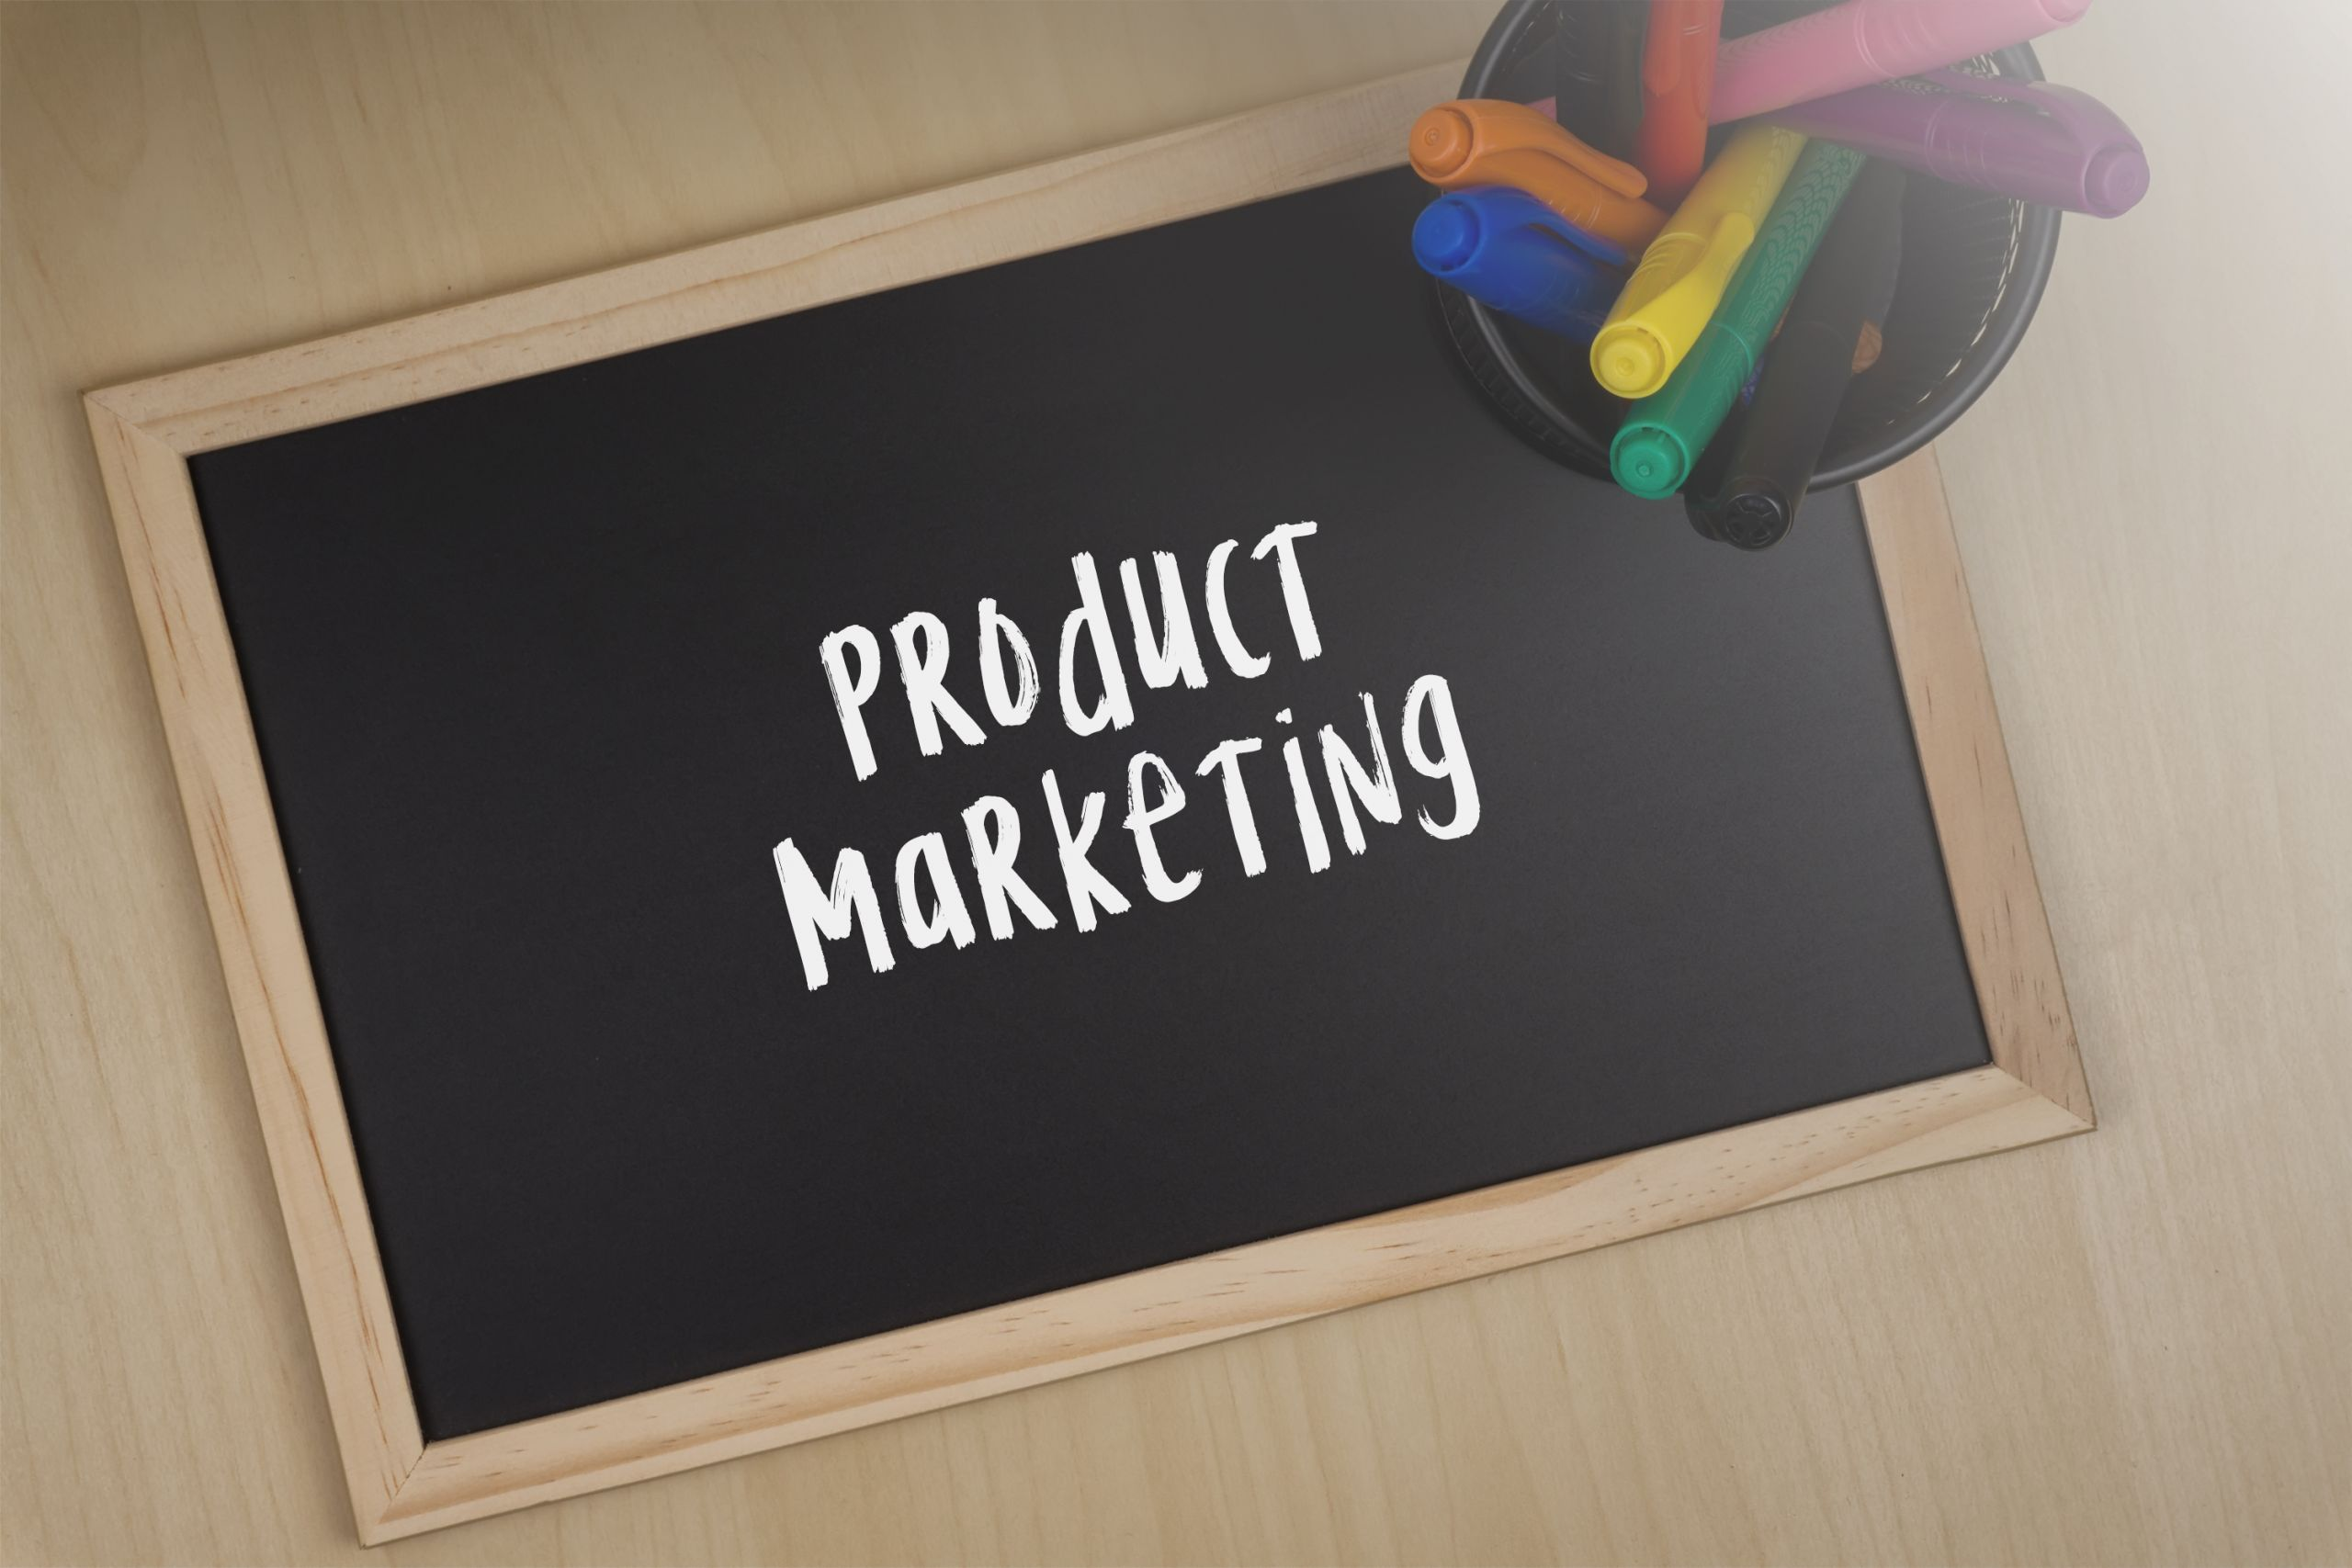 inproduct marketing